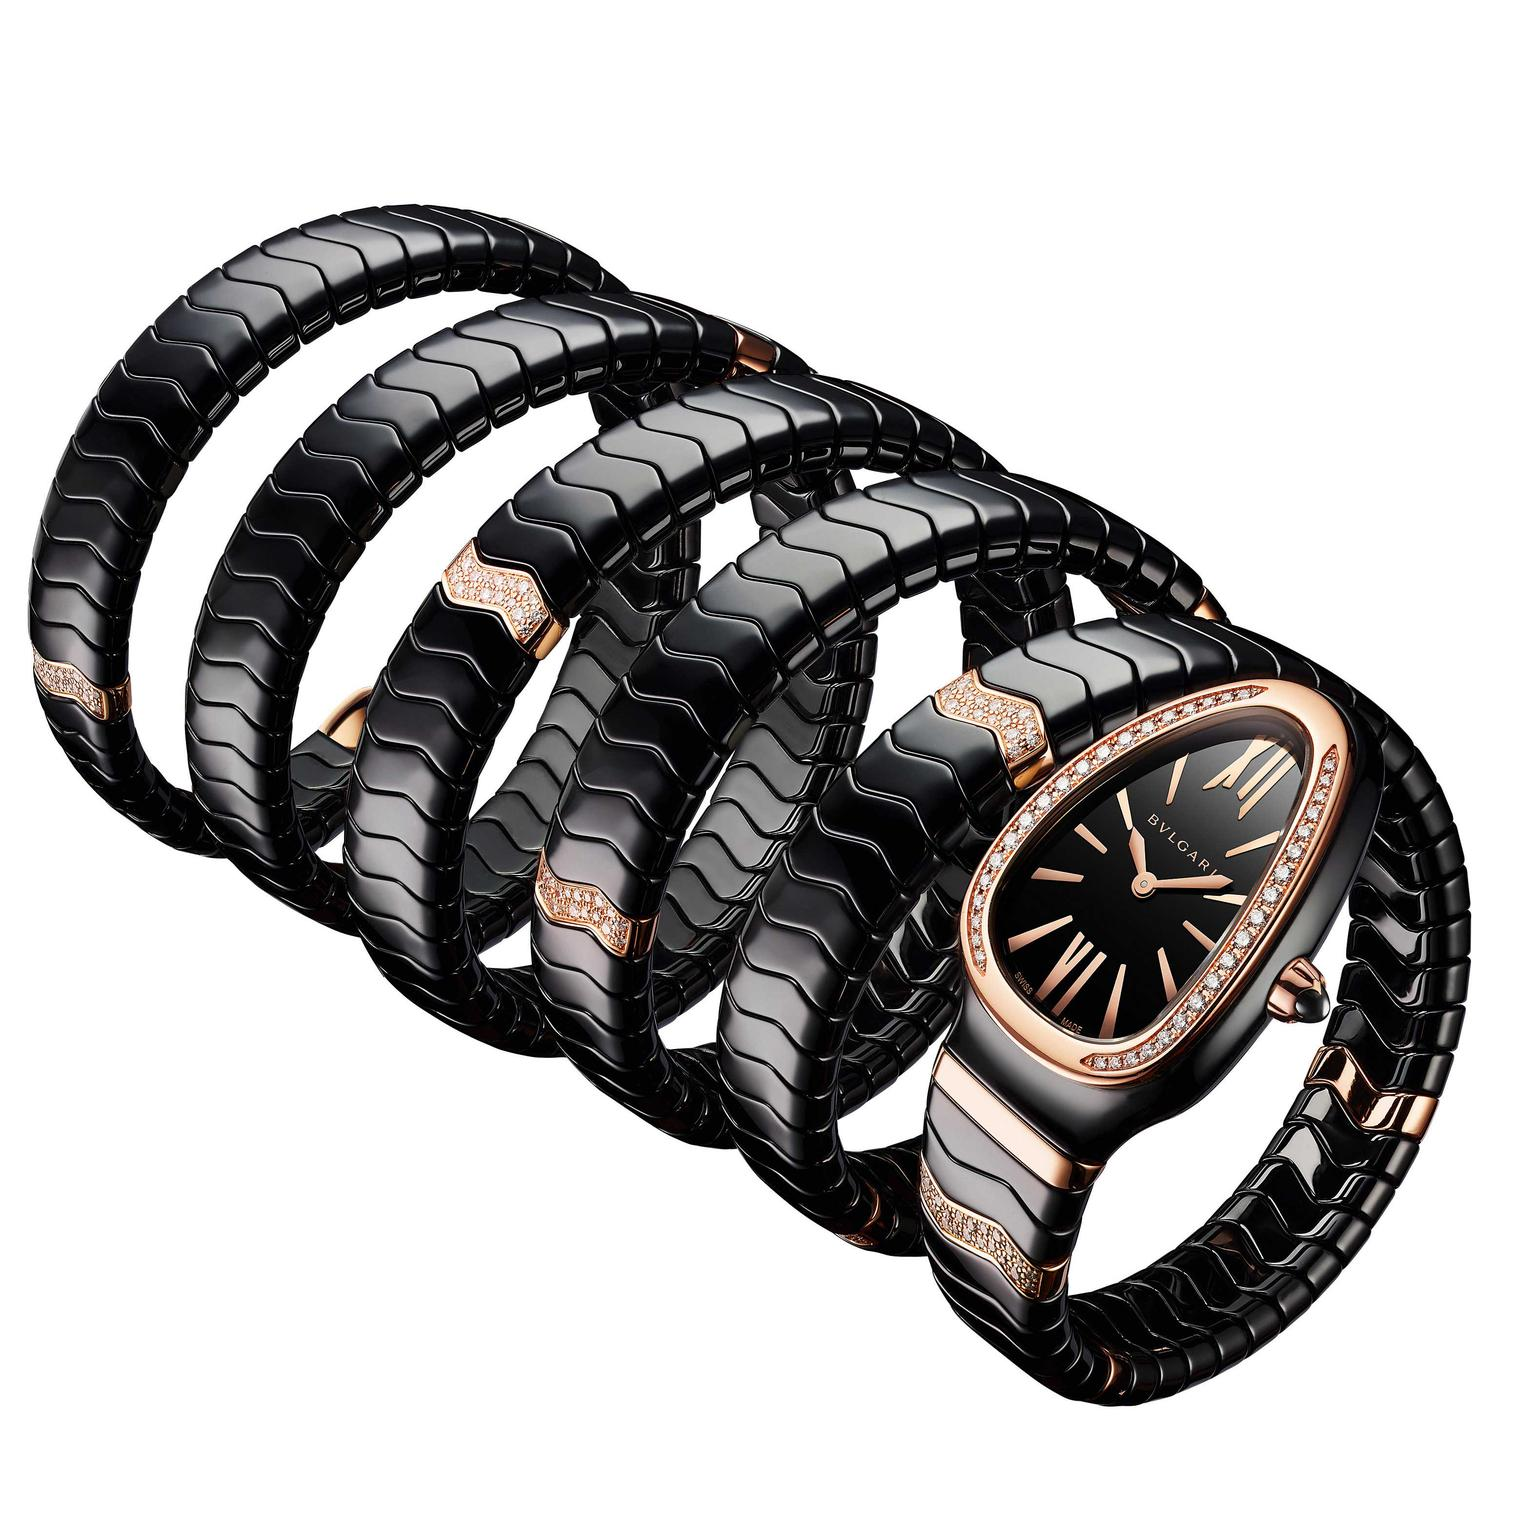 Bulgari Serpenti Spiga Ceramica black ceramic ladies watch five coils